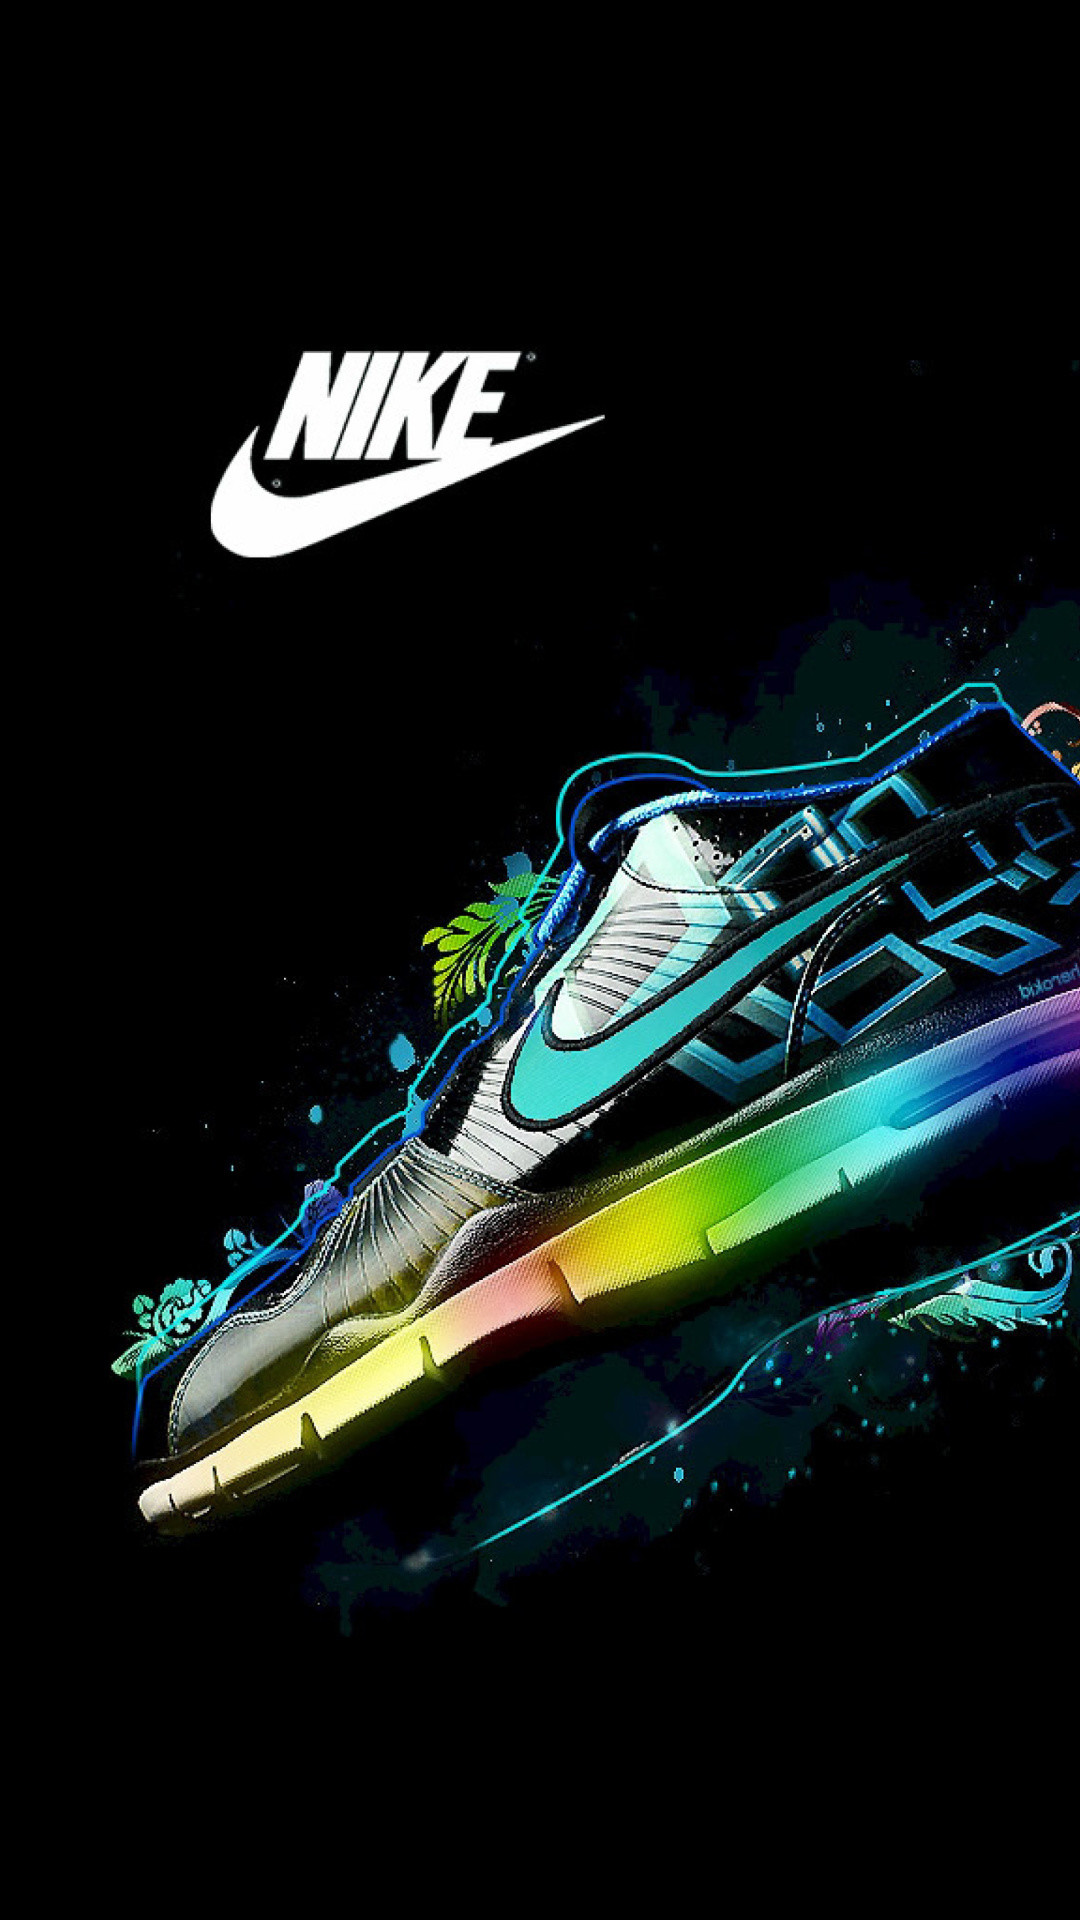 Wallpaper Iphone Nike 28 Images Free Nike Wallpapers For